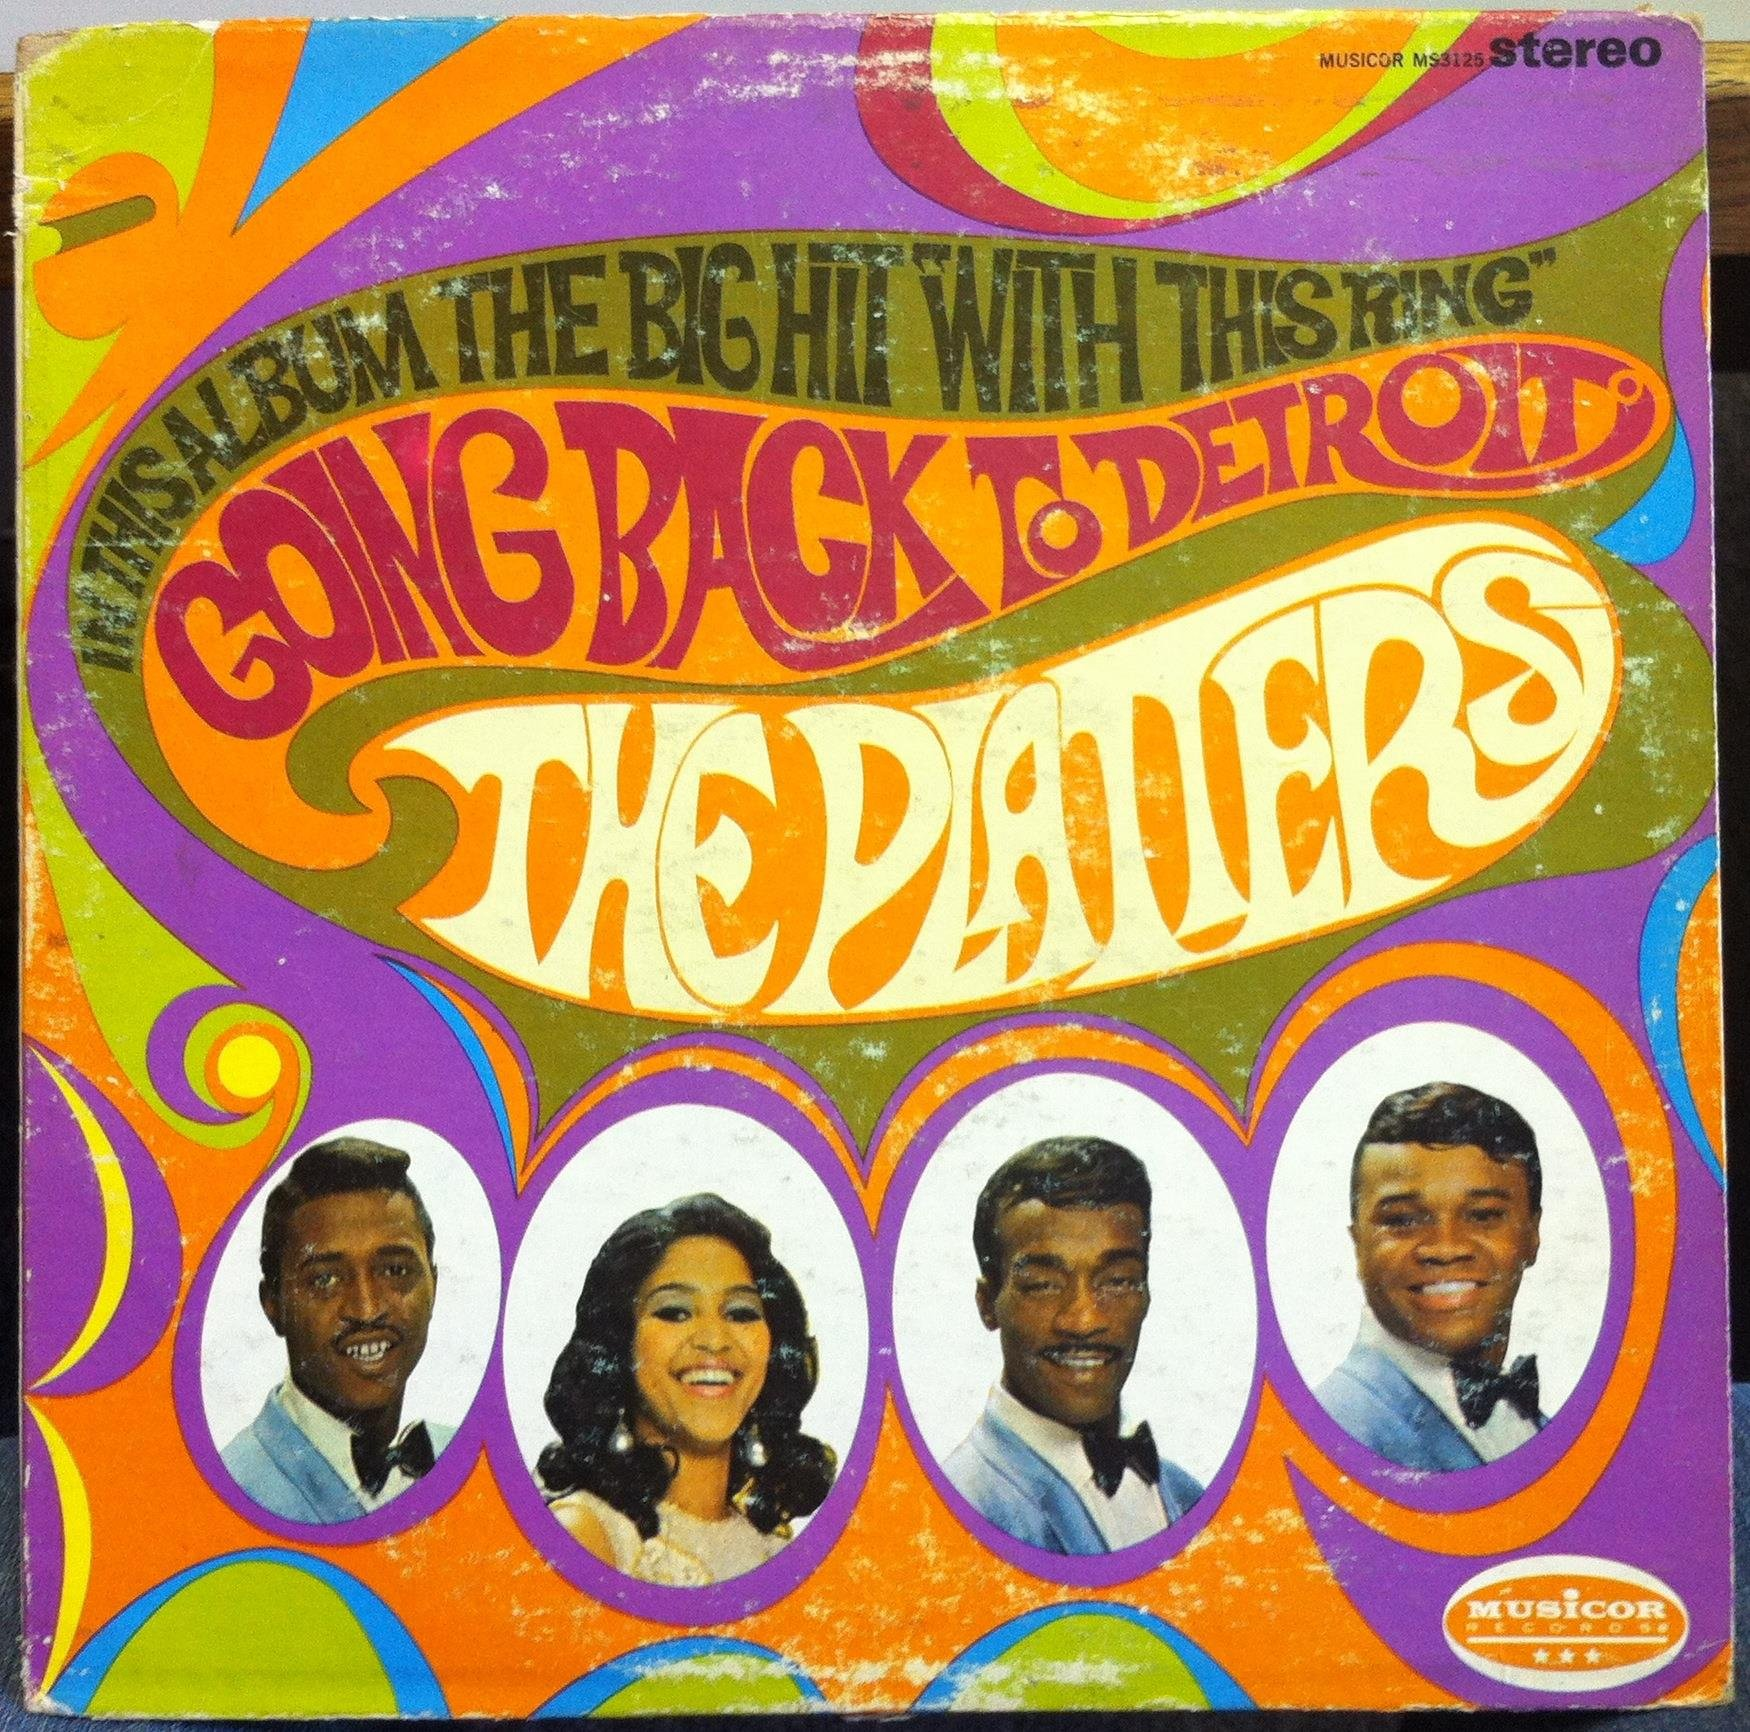 The Platters Going Back to Detroit by MUSICOR RECORDS